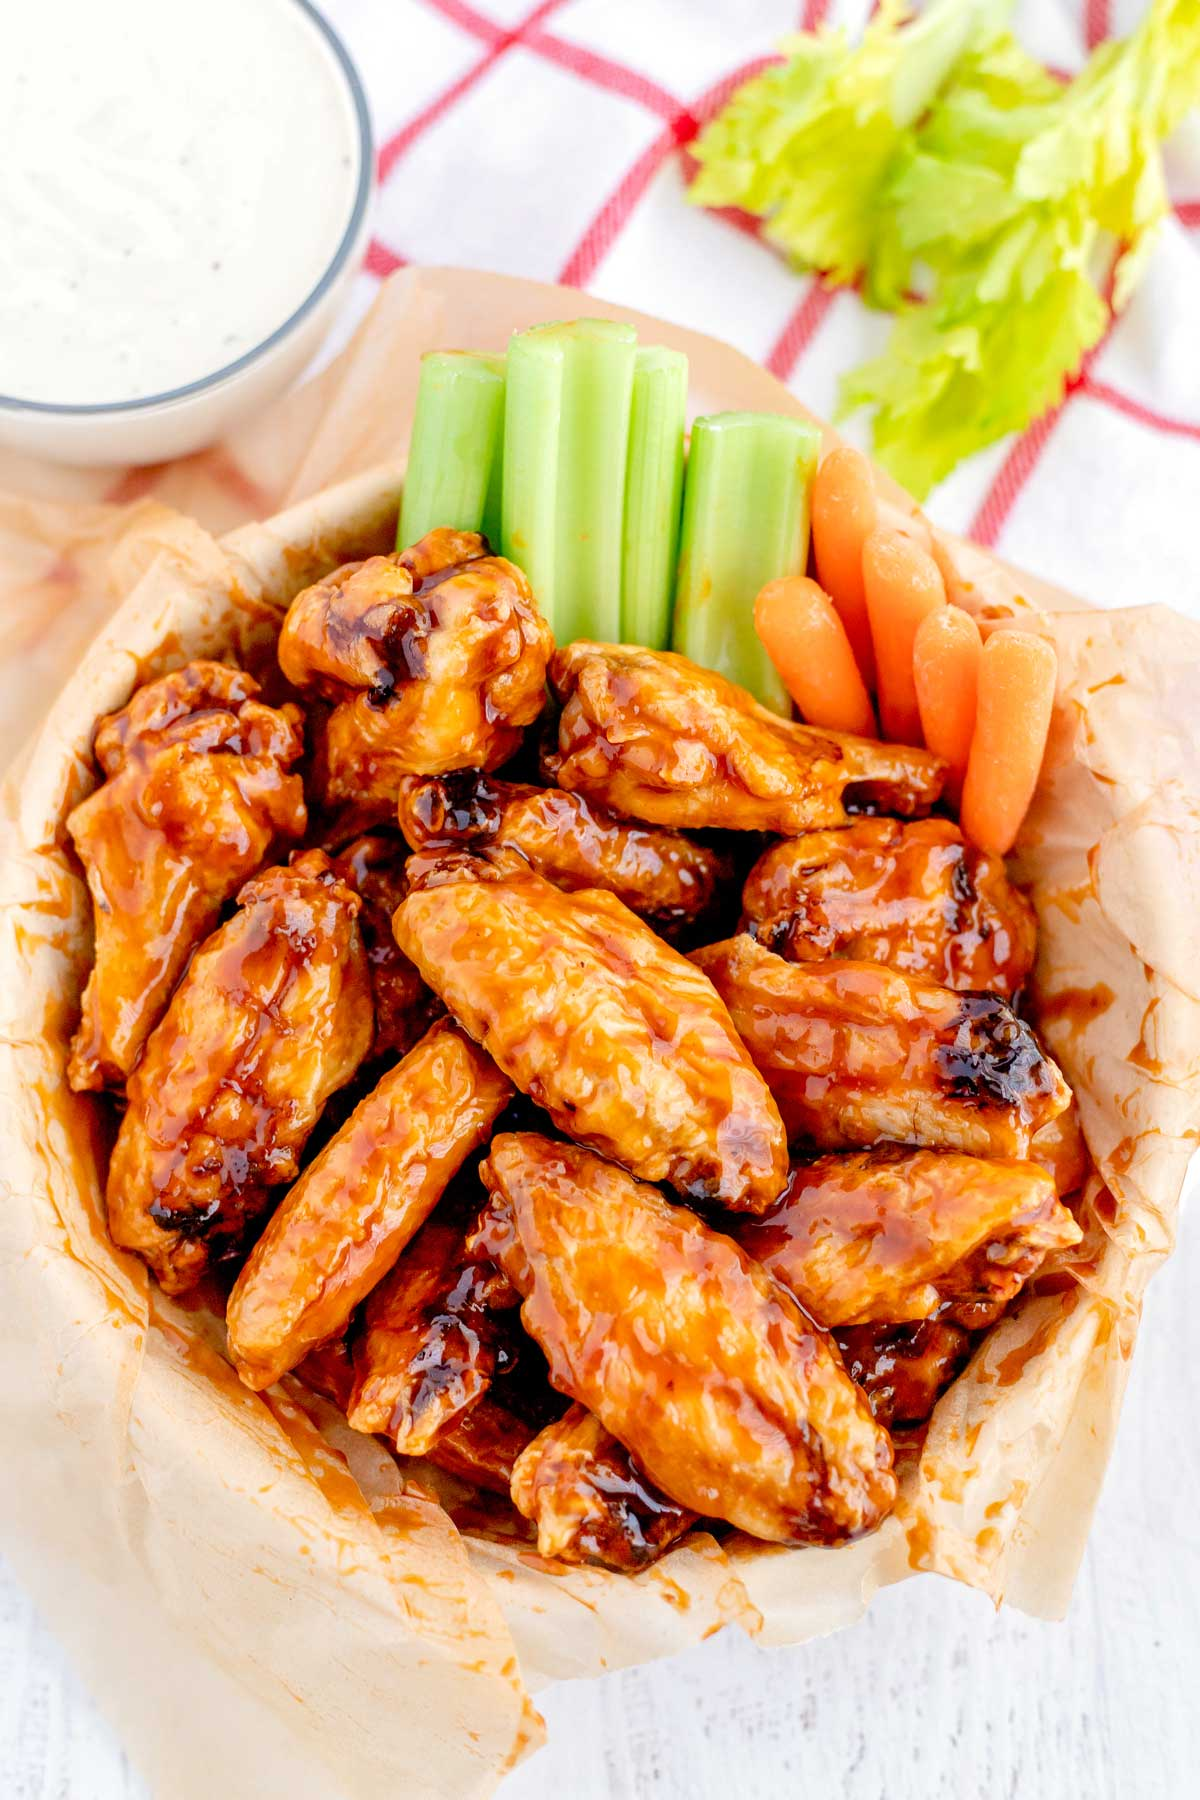 Baked Chicken Wings recipe